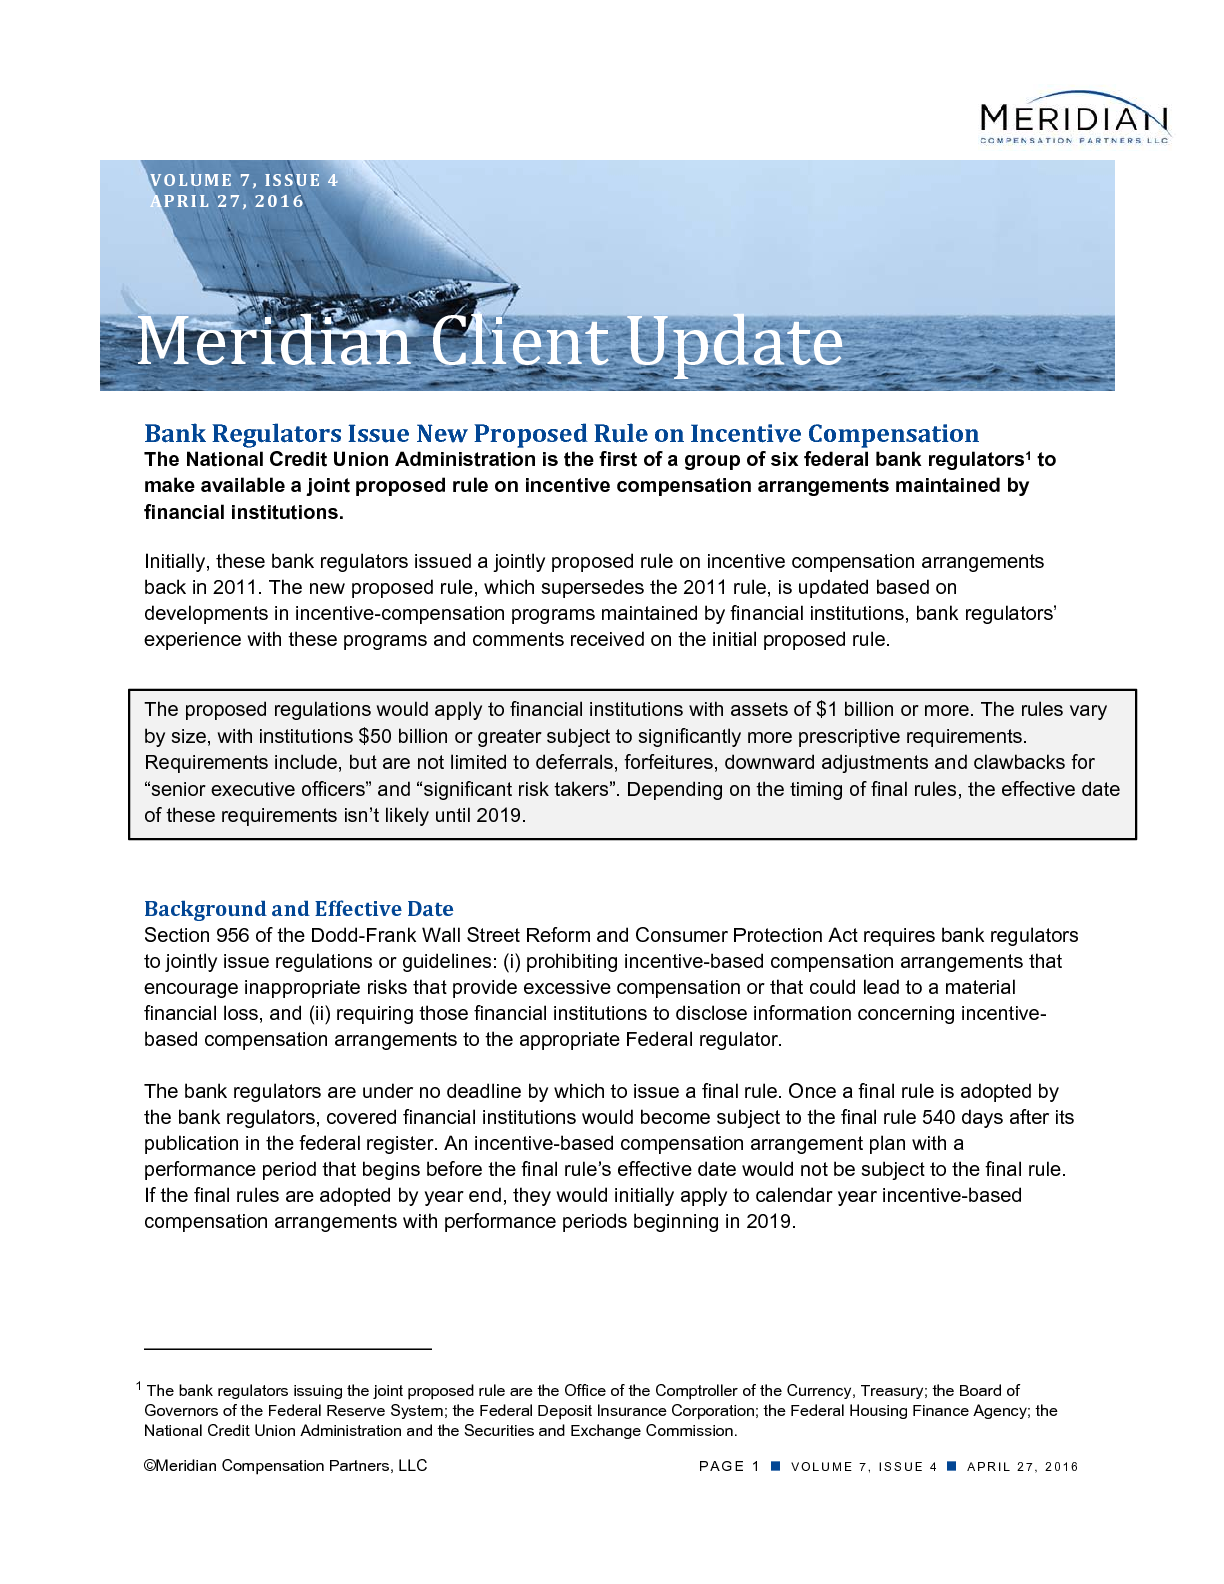 Bank Regulators Issue New Proposed Rule on Incentive Compensation (PDF)